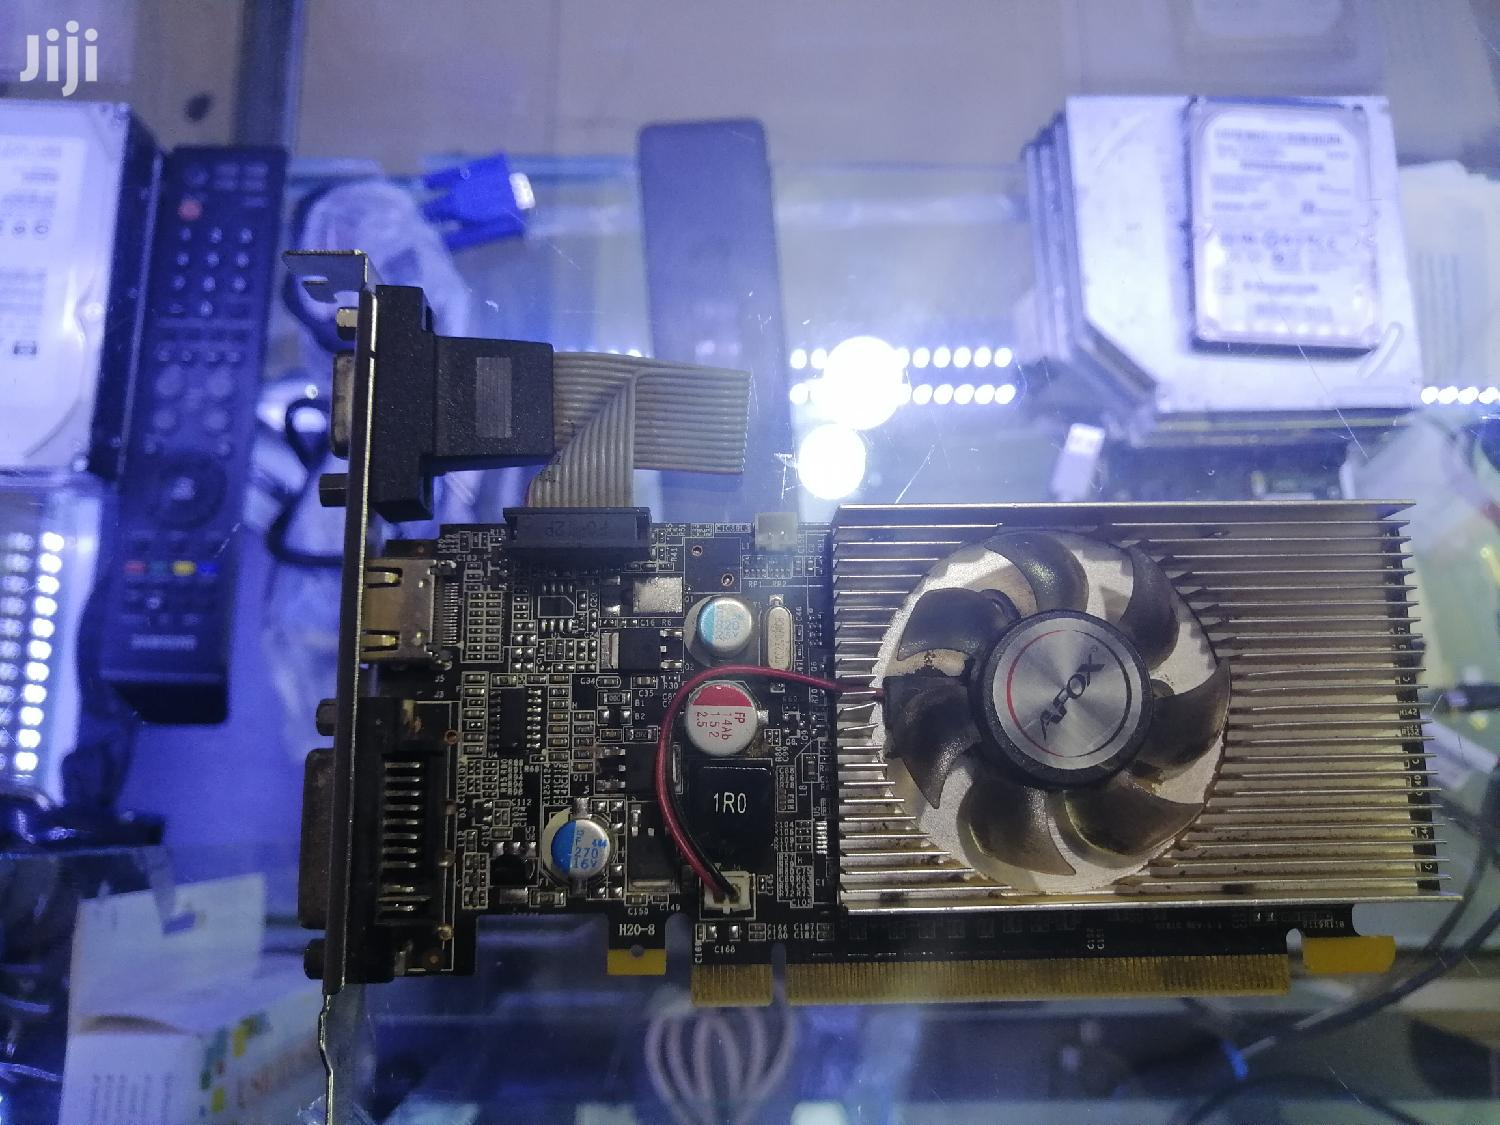 Archive: 1GB Ddr3 Graphics Card